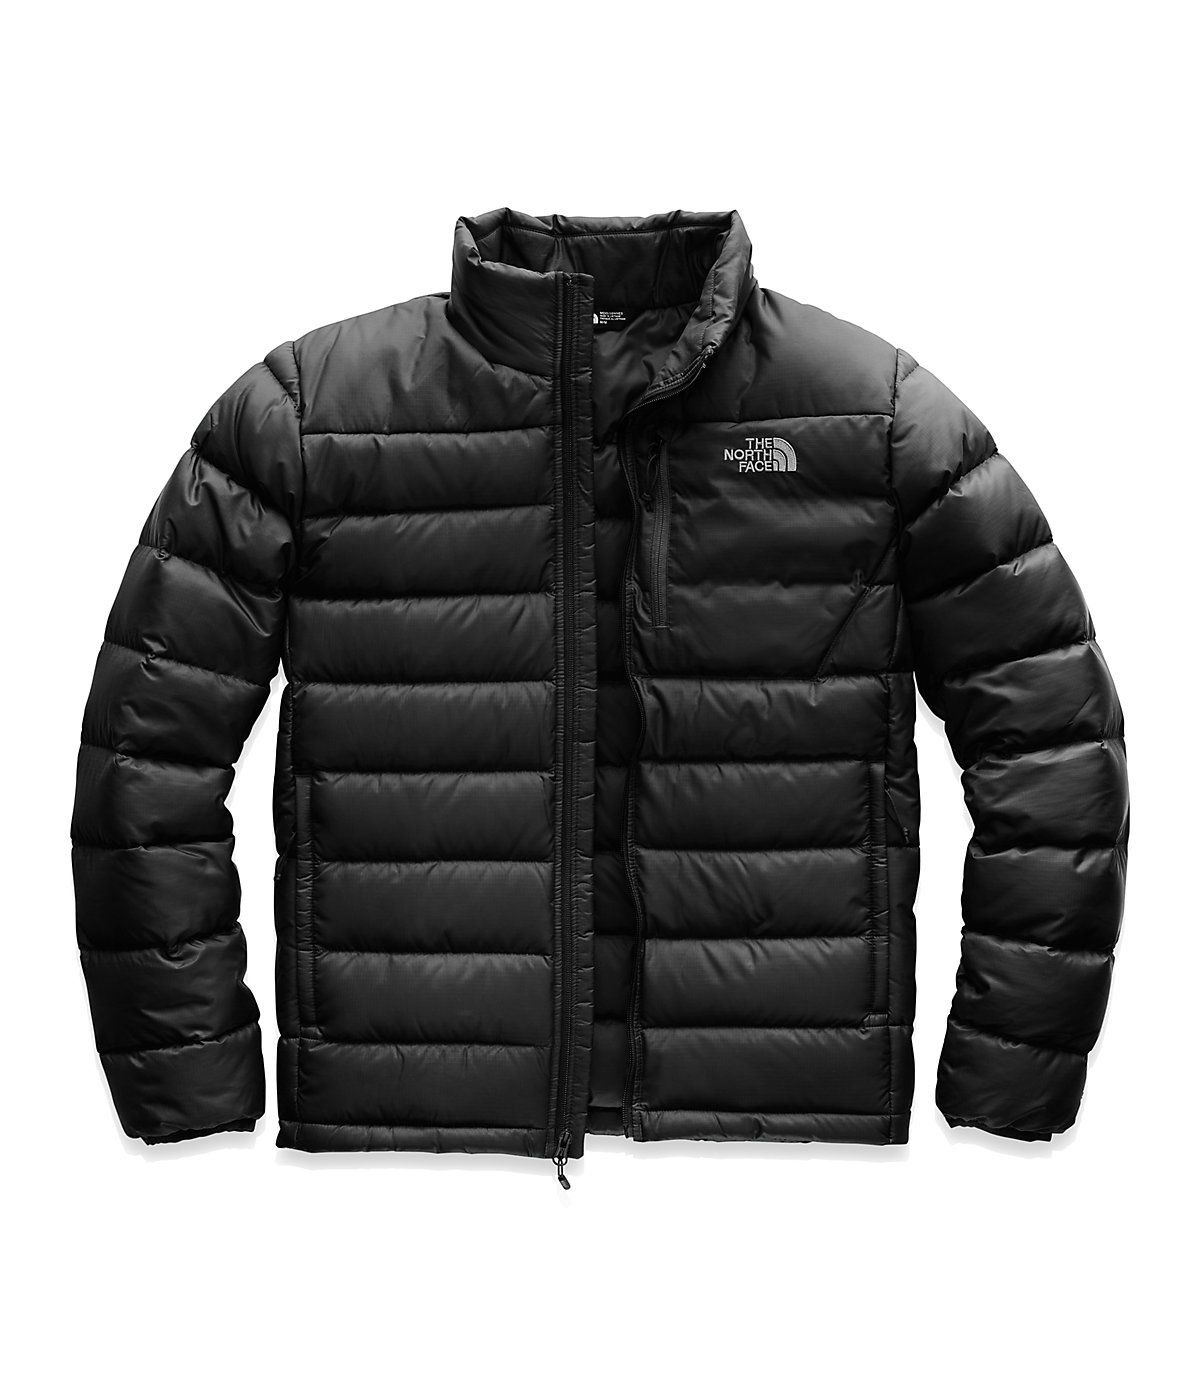 Men S Aconcagua 2 Jacket The North Face In 2021 Mens Jackets Insulated Jackets Mens Winter Coat [ 1396 x 1200 Pixel ]